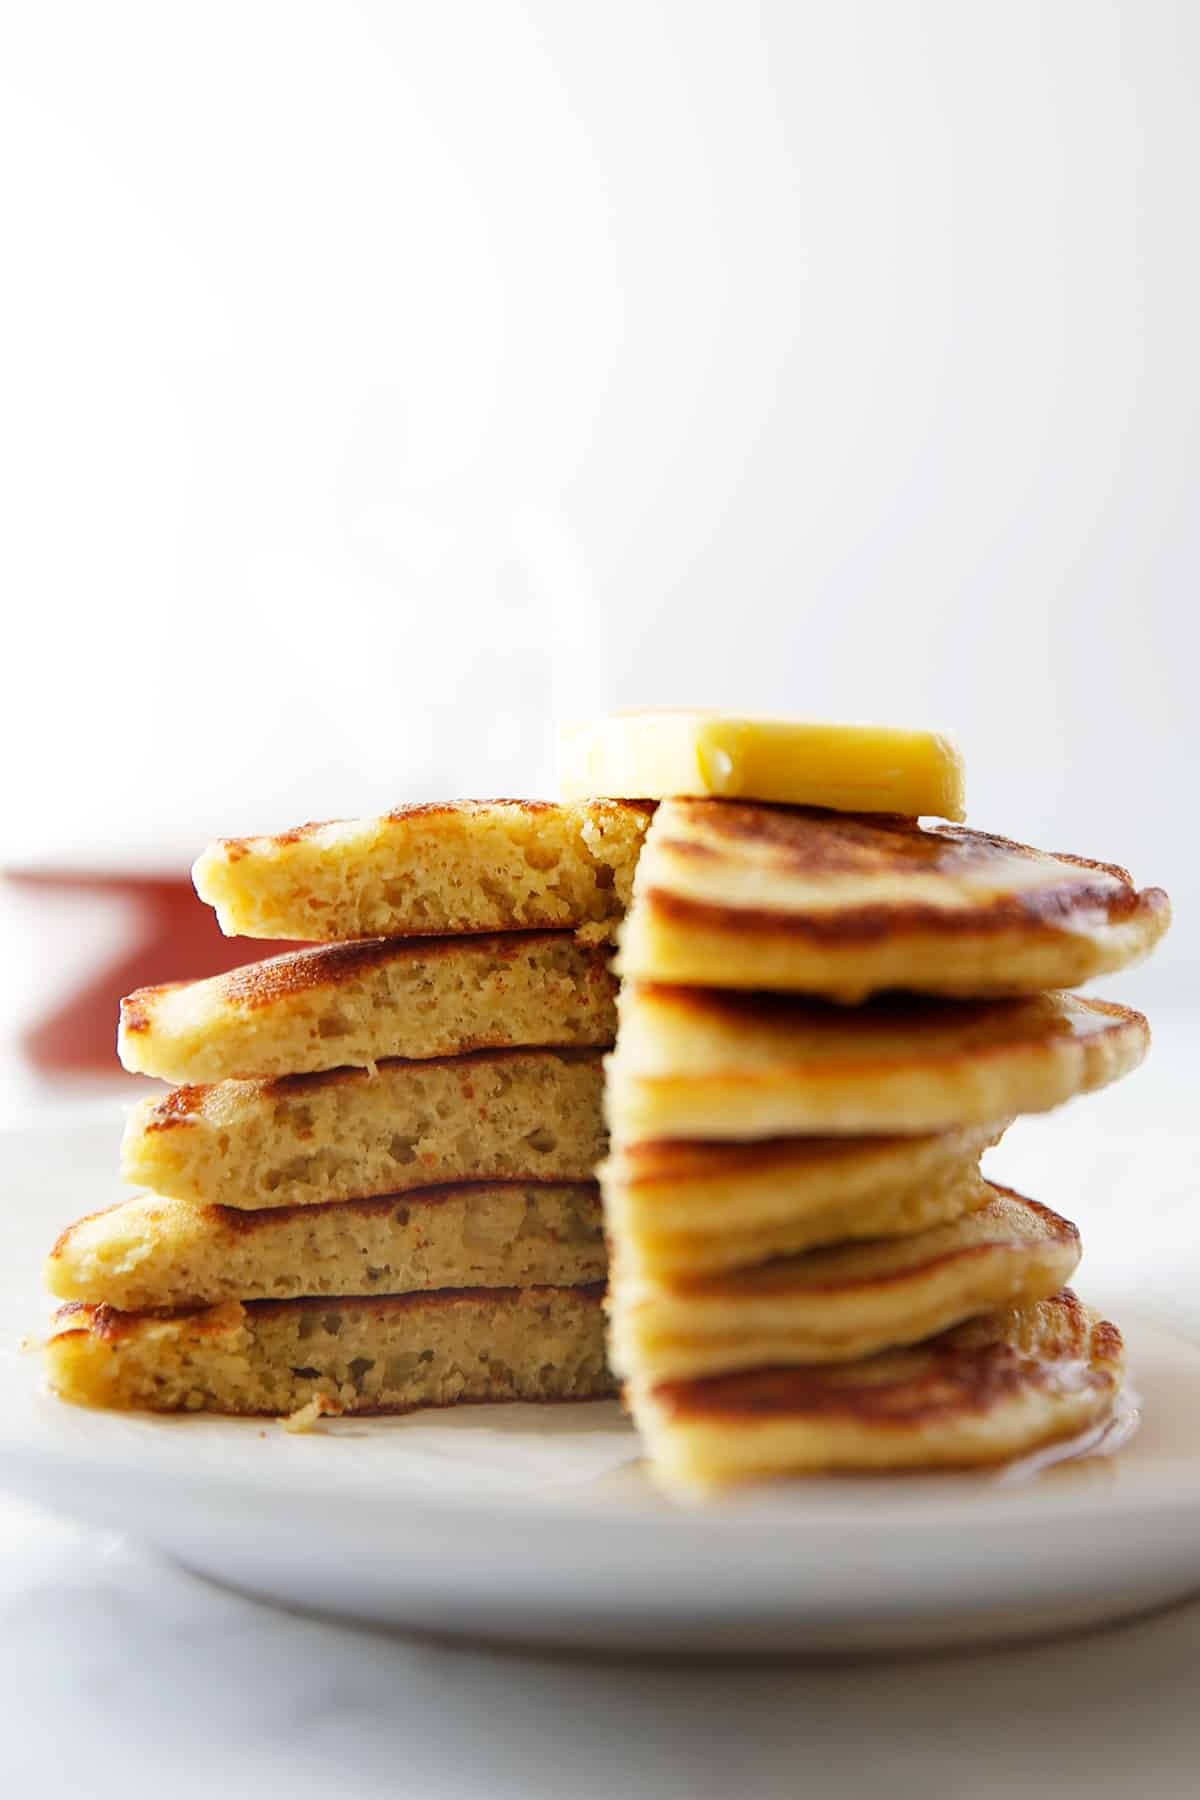 A stack of paleo pancakes with a slice taken out of them.